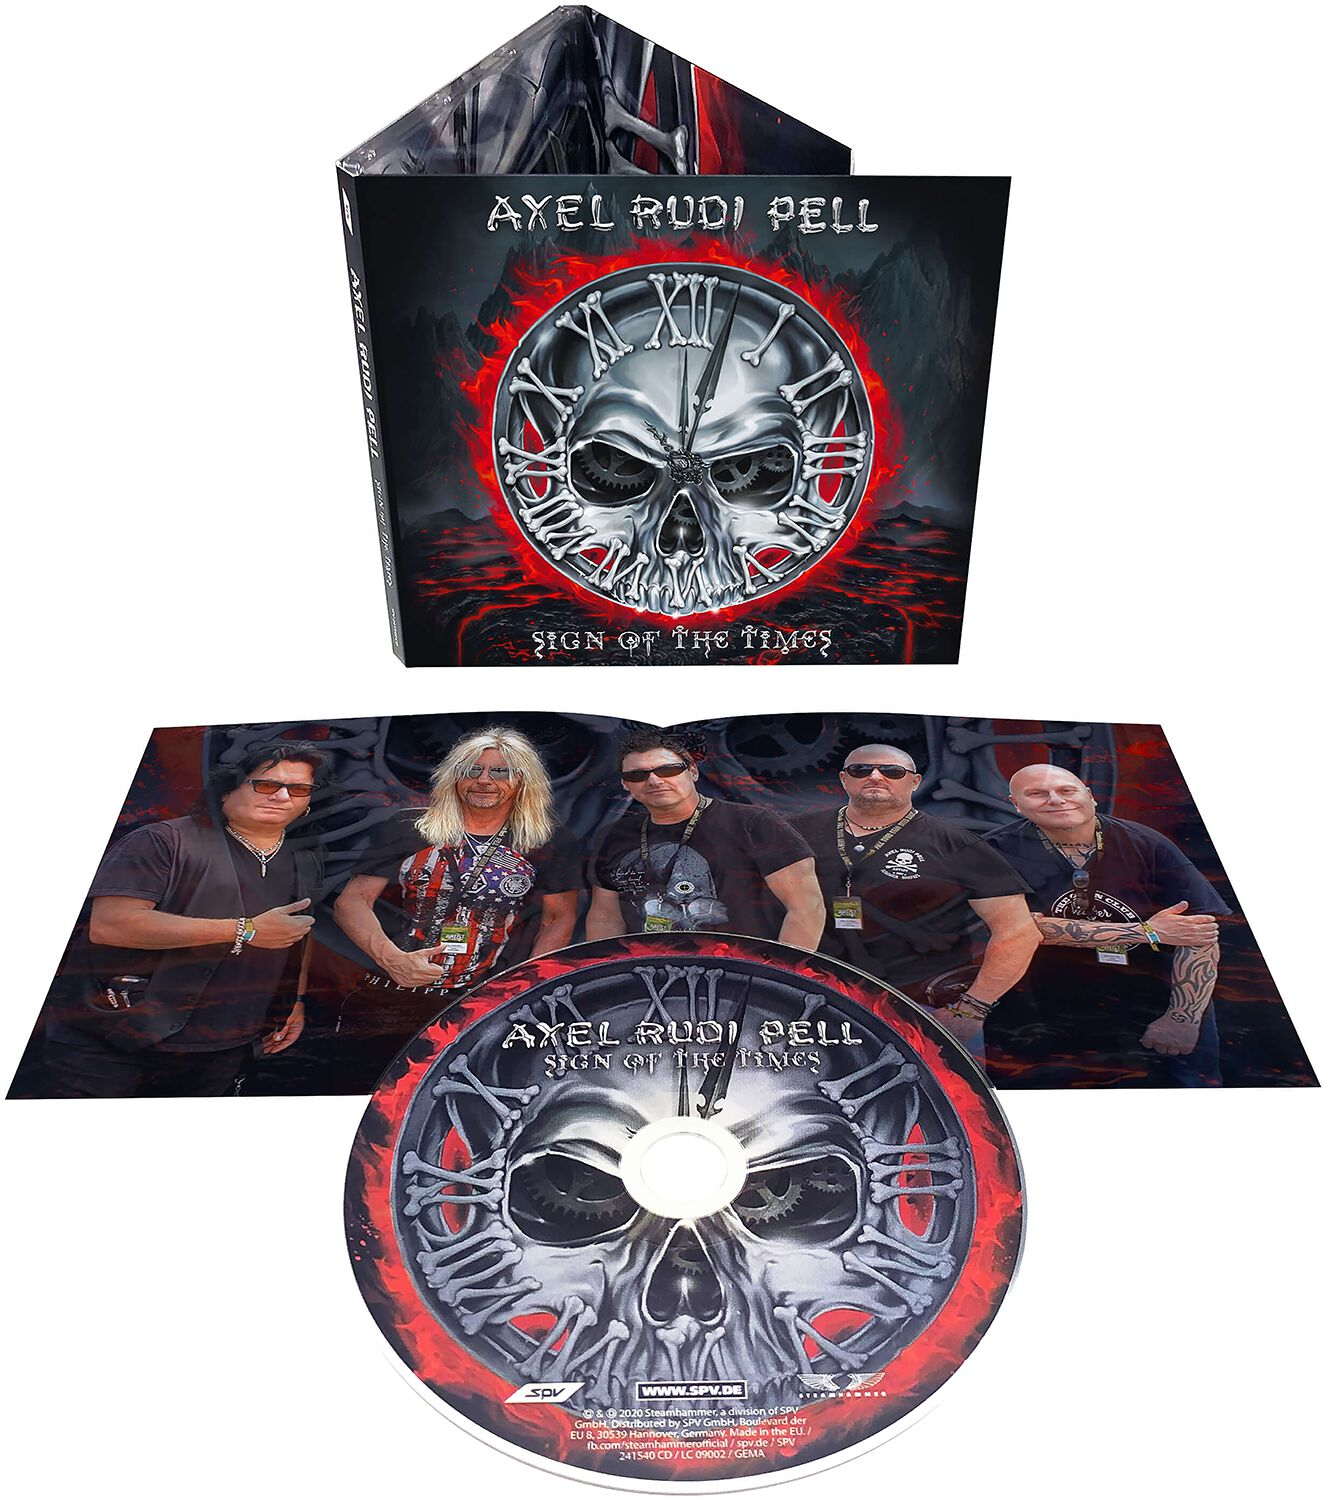 Image of Axel Rudi Pell Sign of the times CD Standard